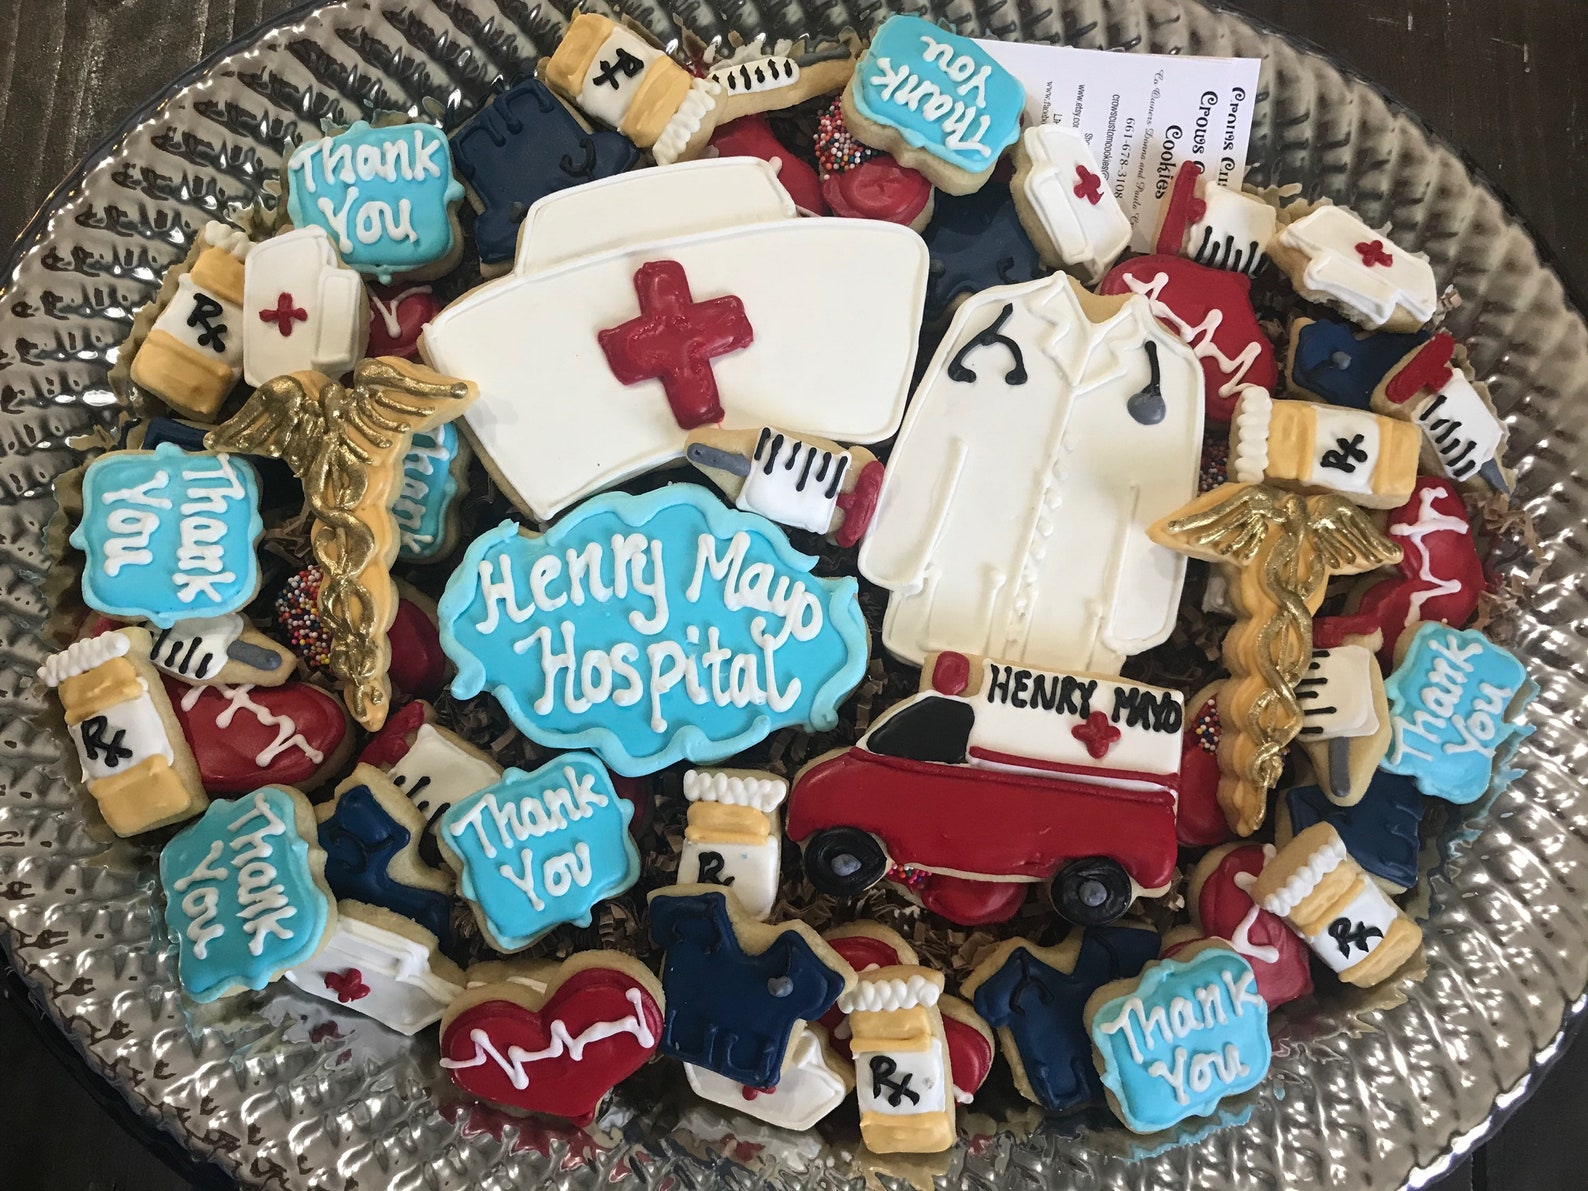 Healthcare Medical Workers Frontline Thank You Cookies Page Two